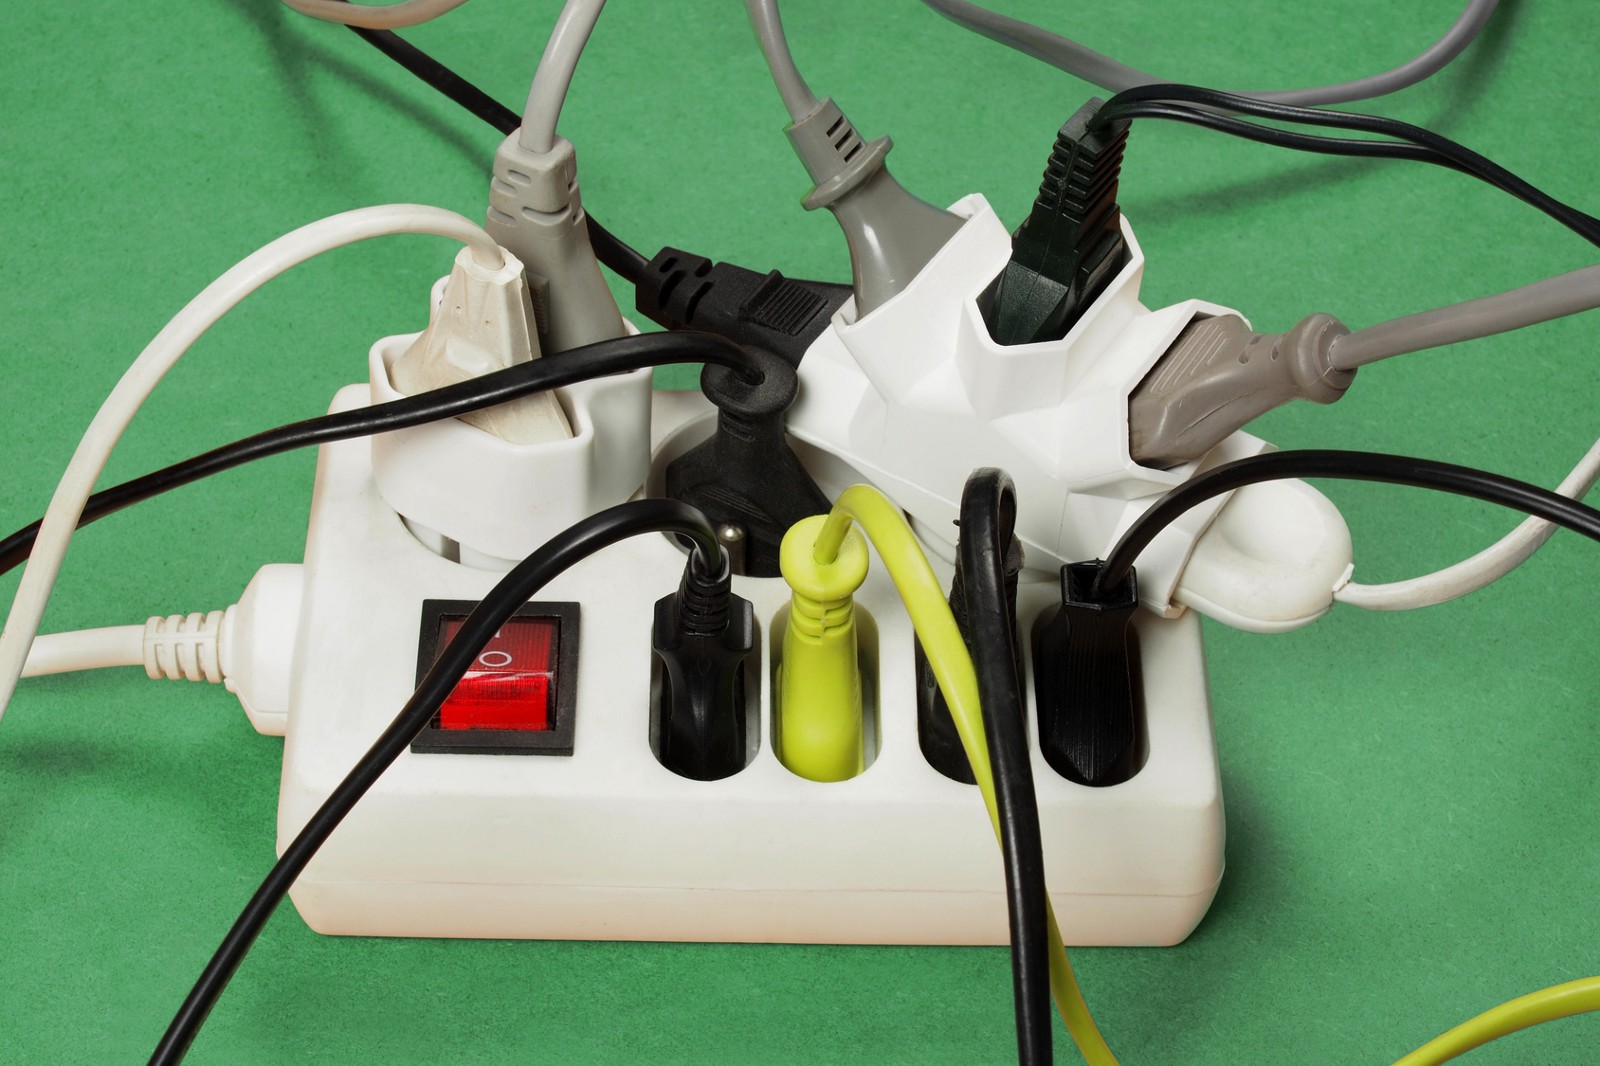 How To Find What Is Tripping Your Circuit Breaker Adam Rusin Wiring Multiple Receptacles Simply Put You Are Running Power Hungry Devices At The Same Time And They Connected